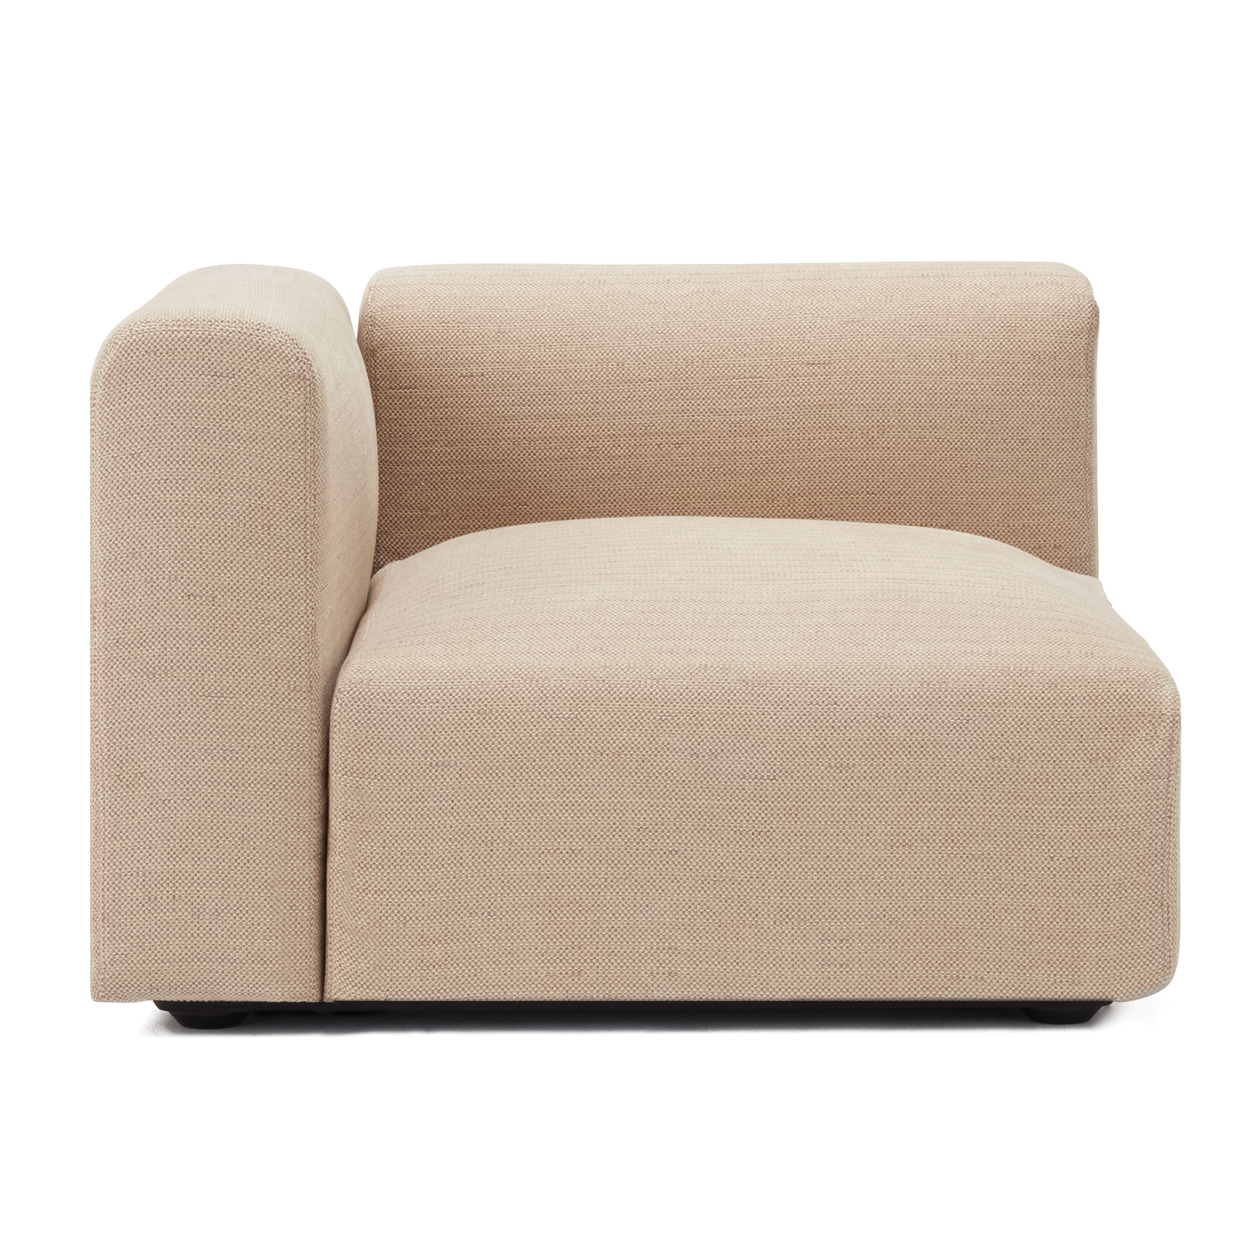 Admirable Cotton Polyester Cover For Unit Sofa With Armrest L Bralicious Painted Fabric Chair Ideas Braliciousco